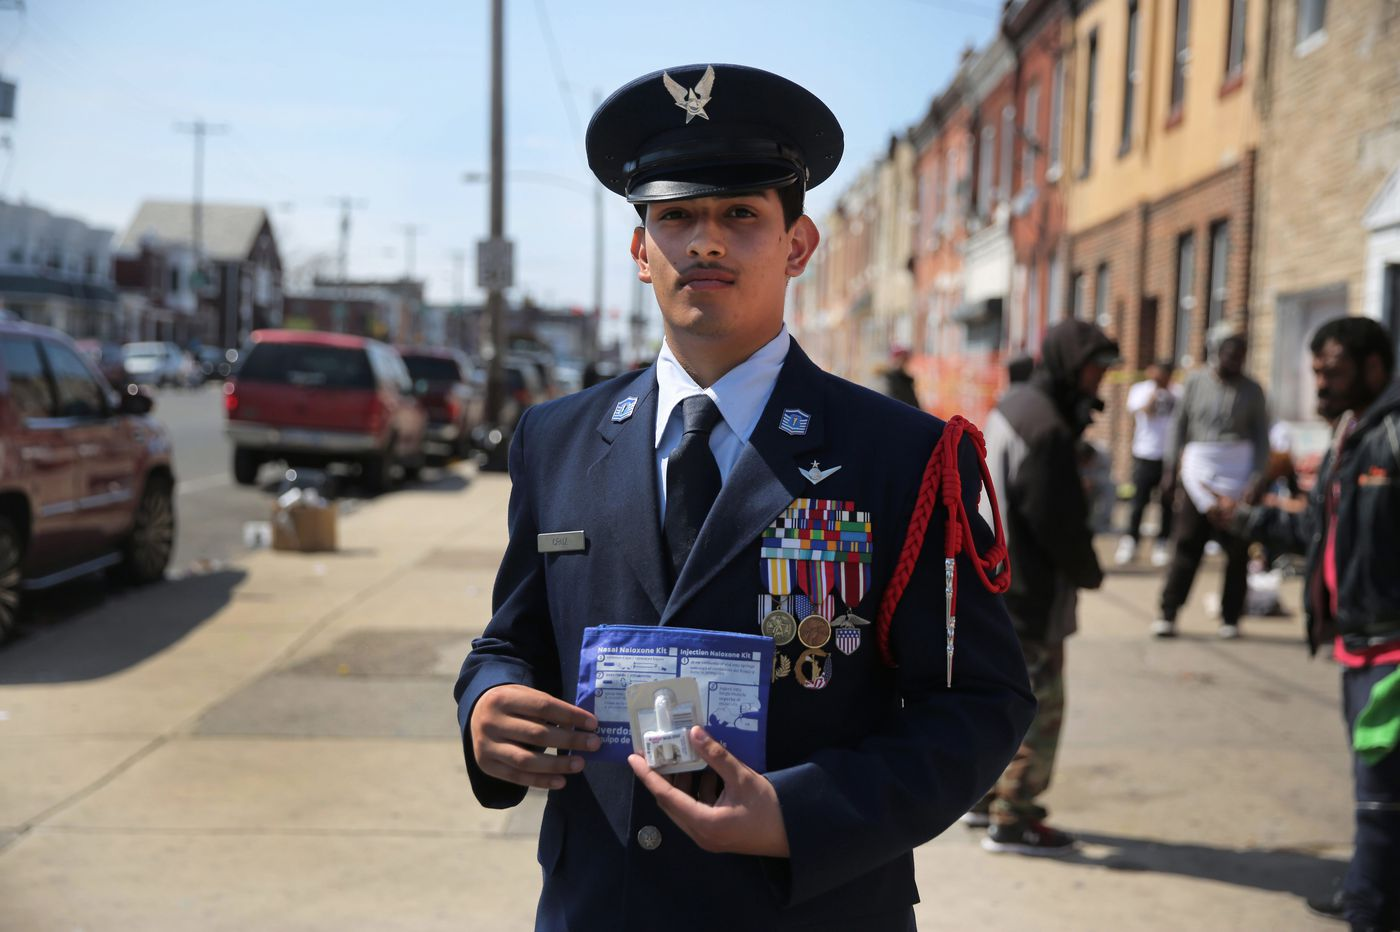 When this ROTC cadet, 17, saw an overdose victim, he knew: 'I need to do something' | Mike Newall